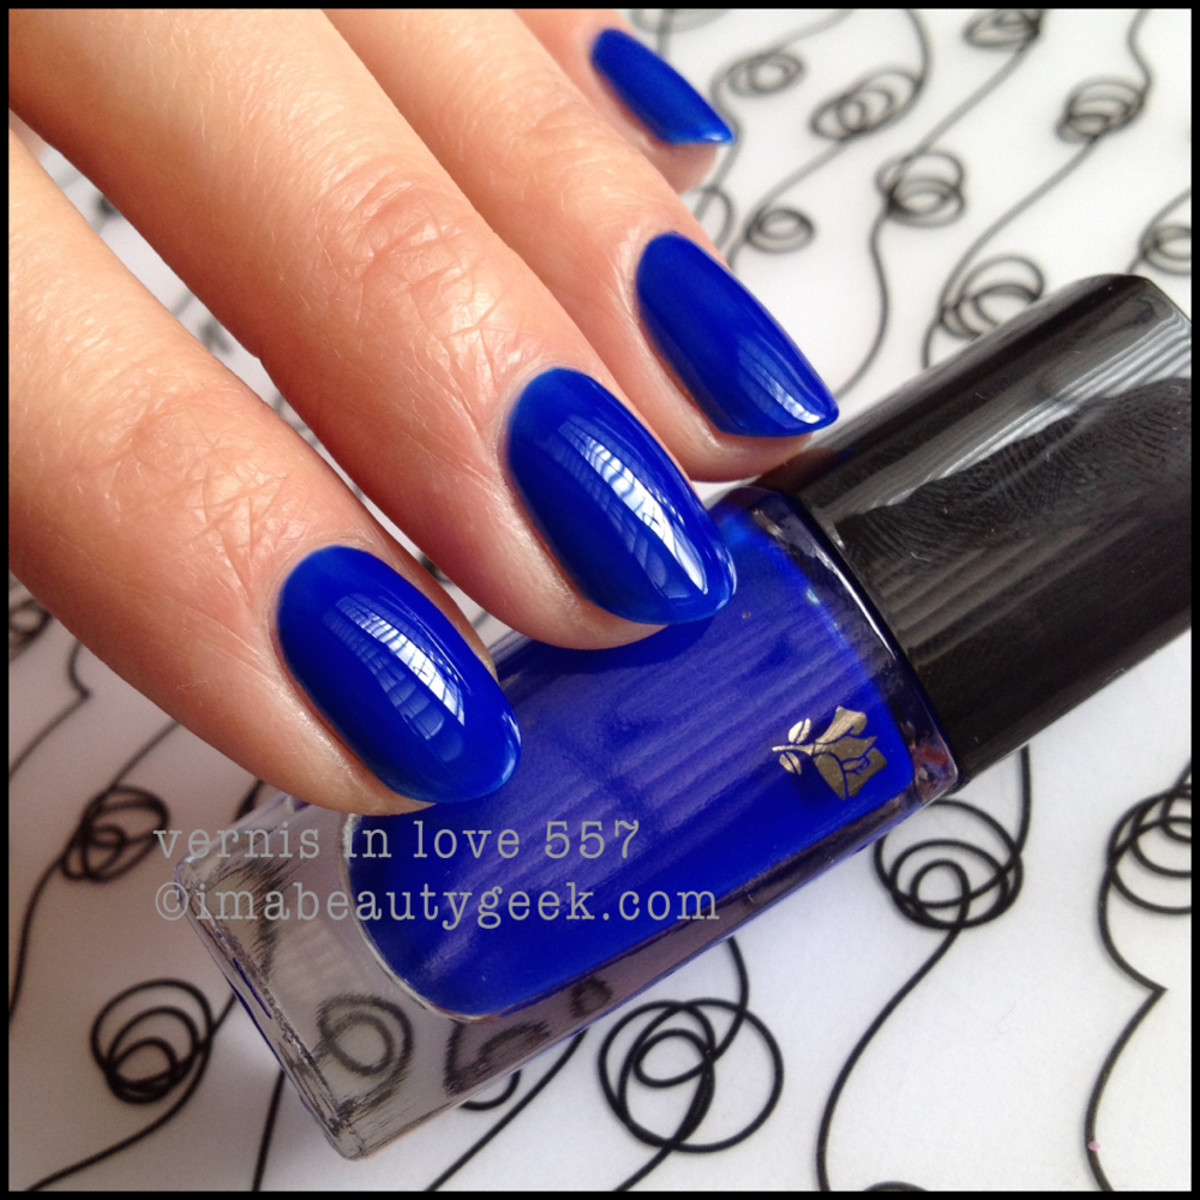 Lancome Marine Chic Vernis in Love 557 Summer 2014